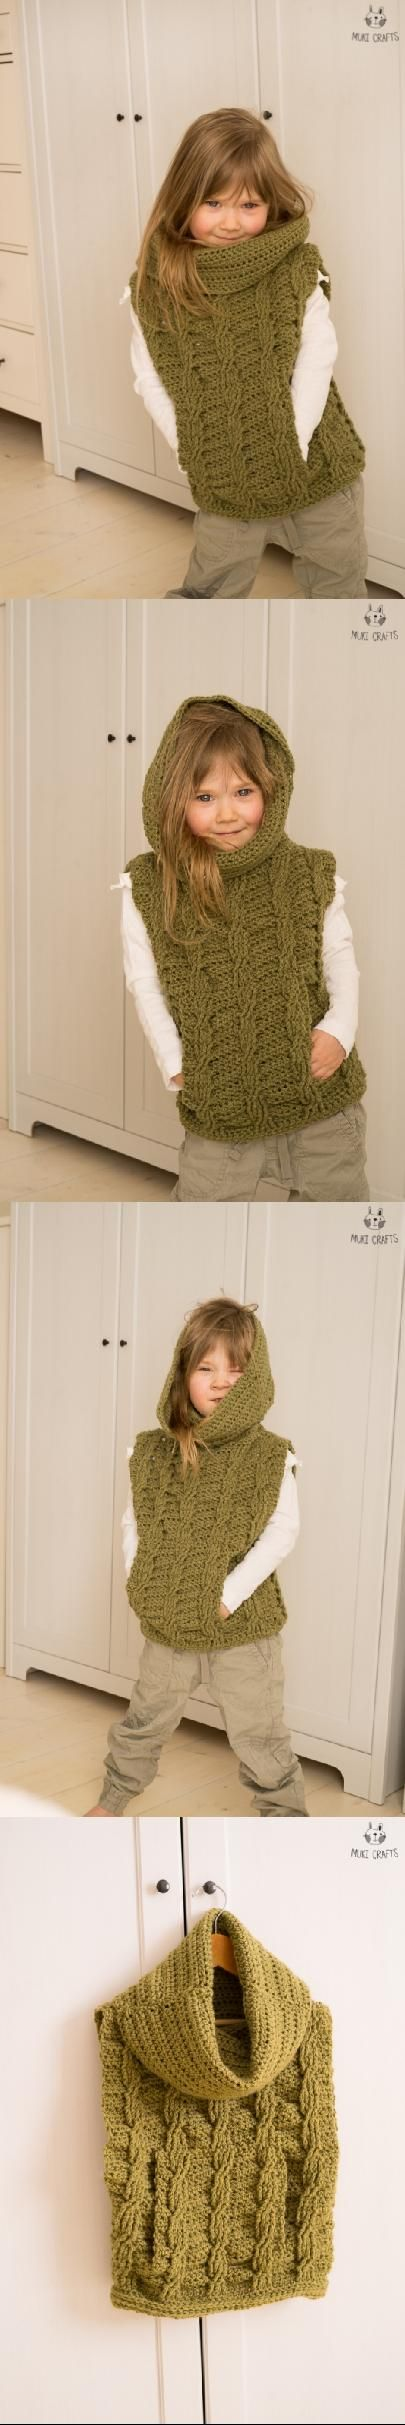 Cable Poncho Cora Crochet Pattern